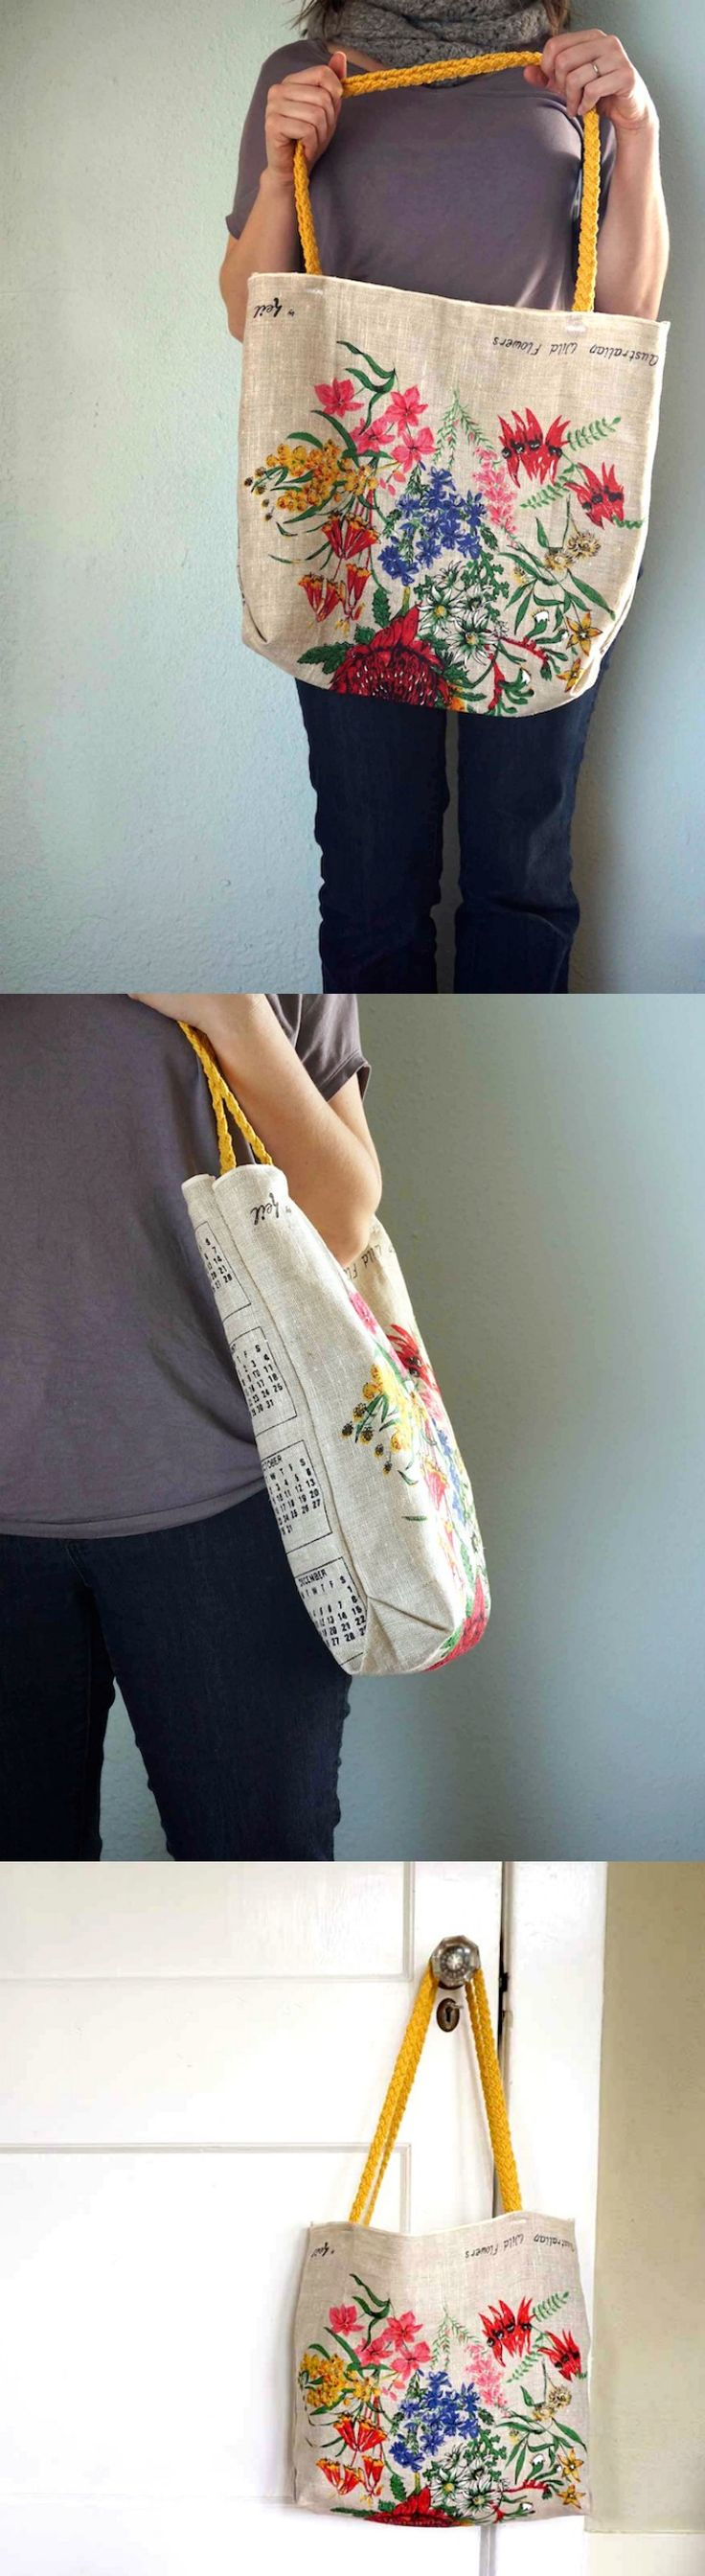 Learn how to make a DIY tote from a thrift store tea towel find. So easy, cute, and budget friendly!